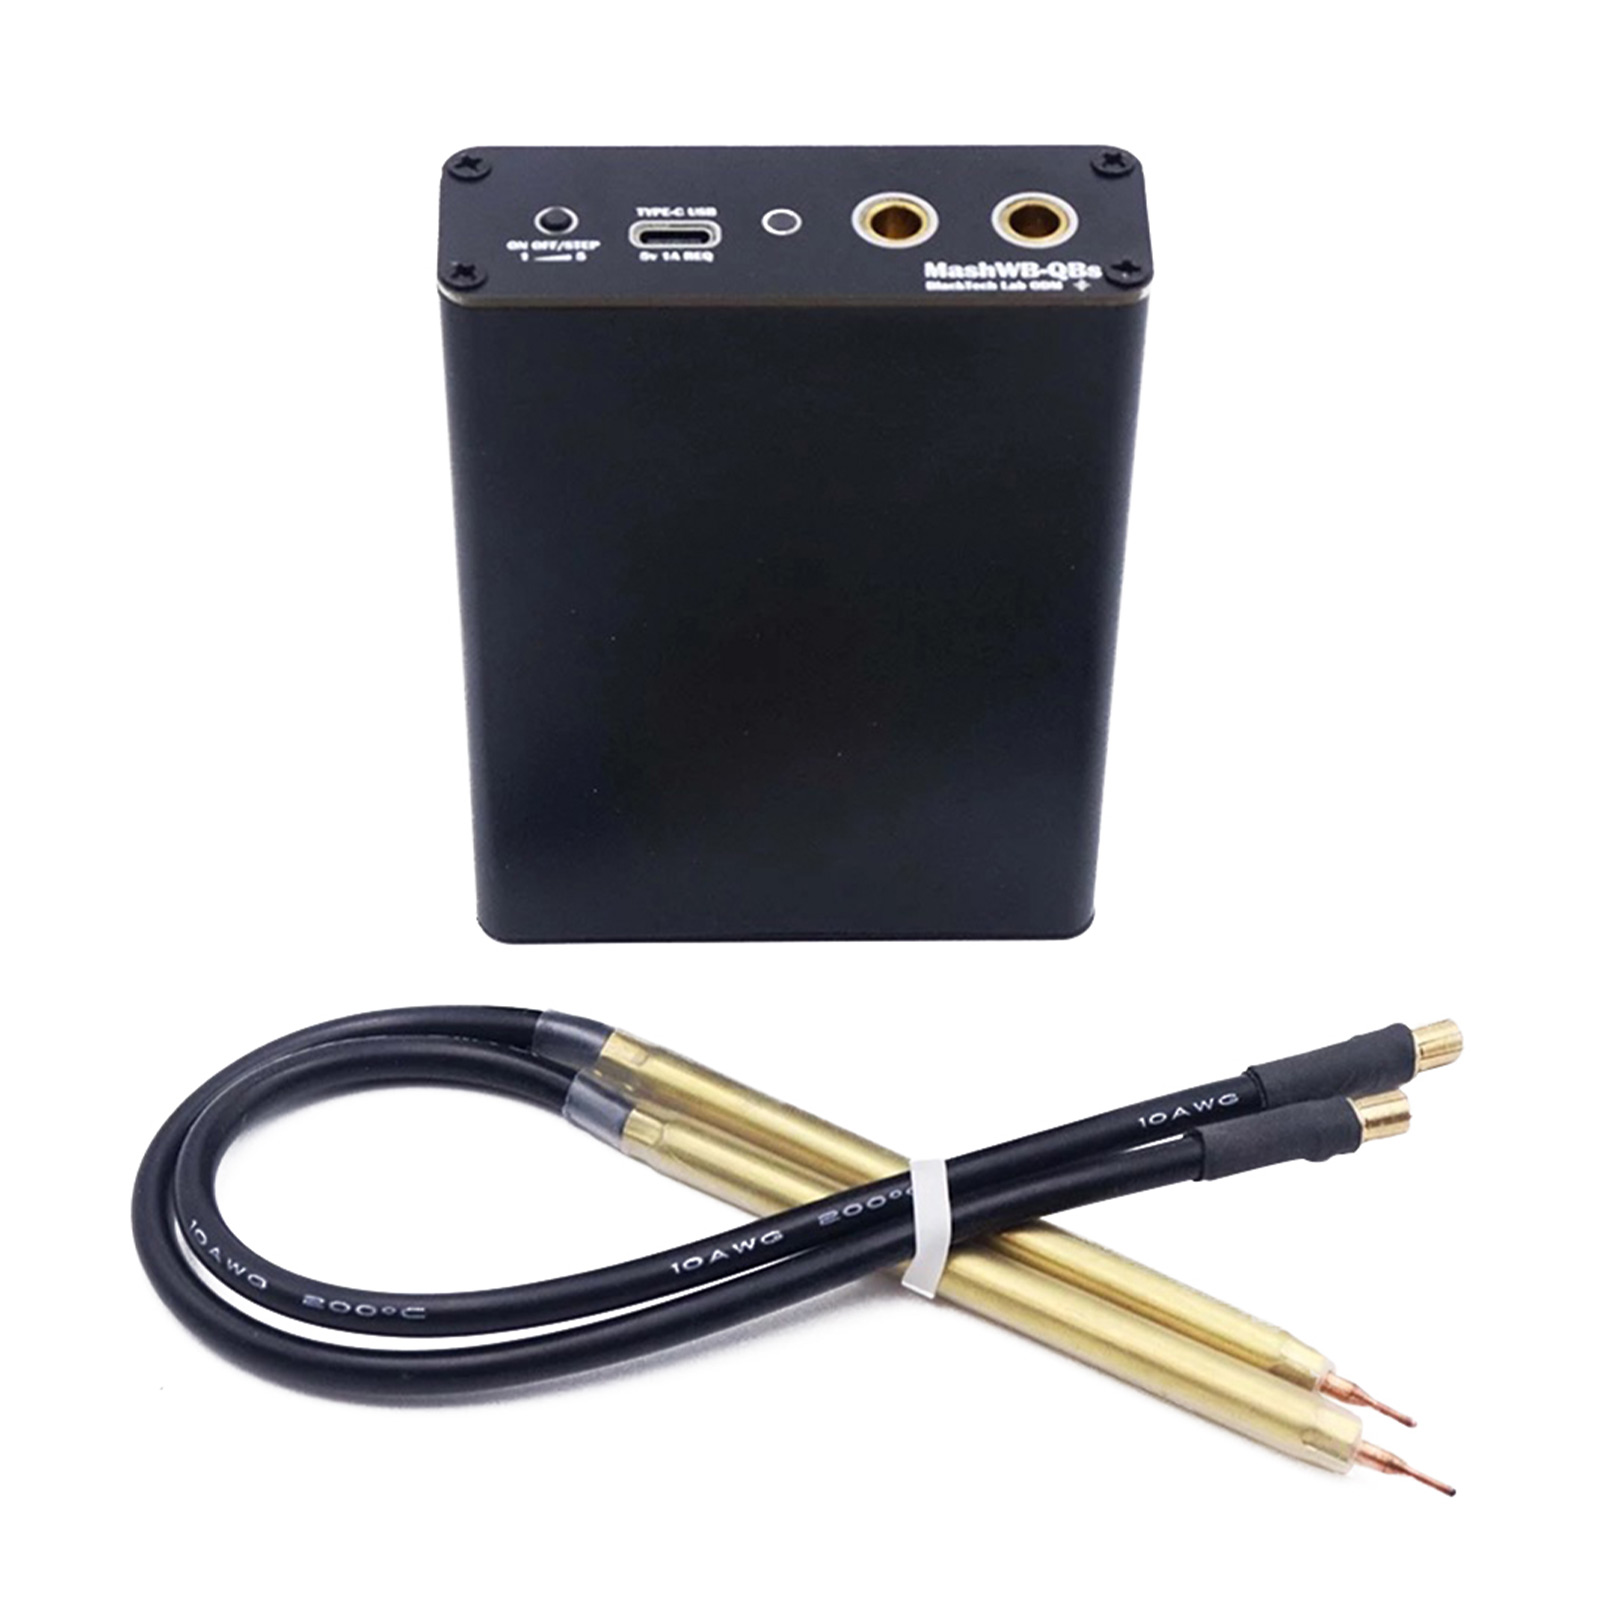 For Battery Wear Resistance 5 Gears Adjustable Spot Welder With LED Indicator DIY Rechargeable Aluminium Alloy Portable Mini